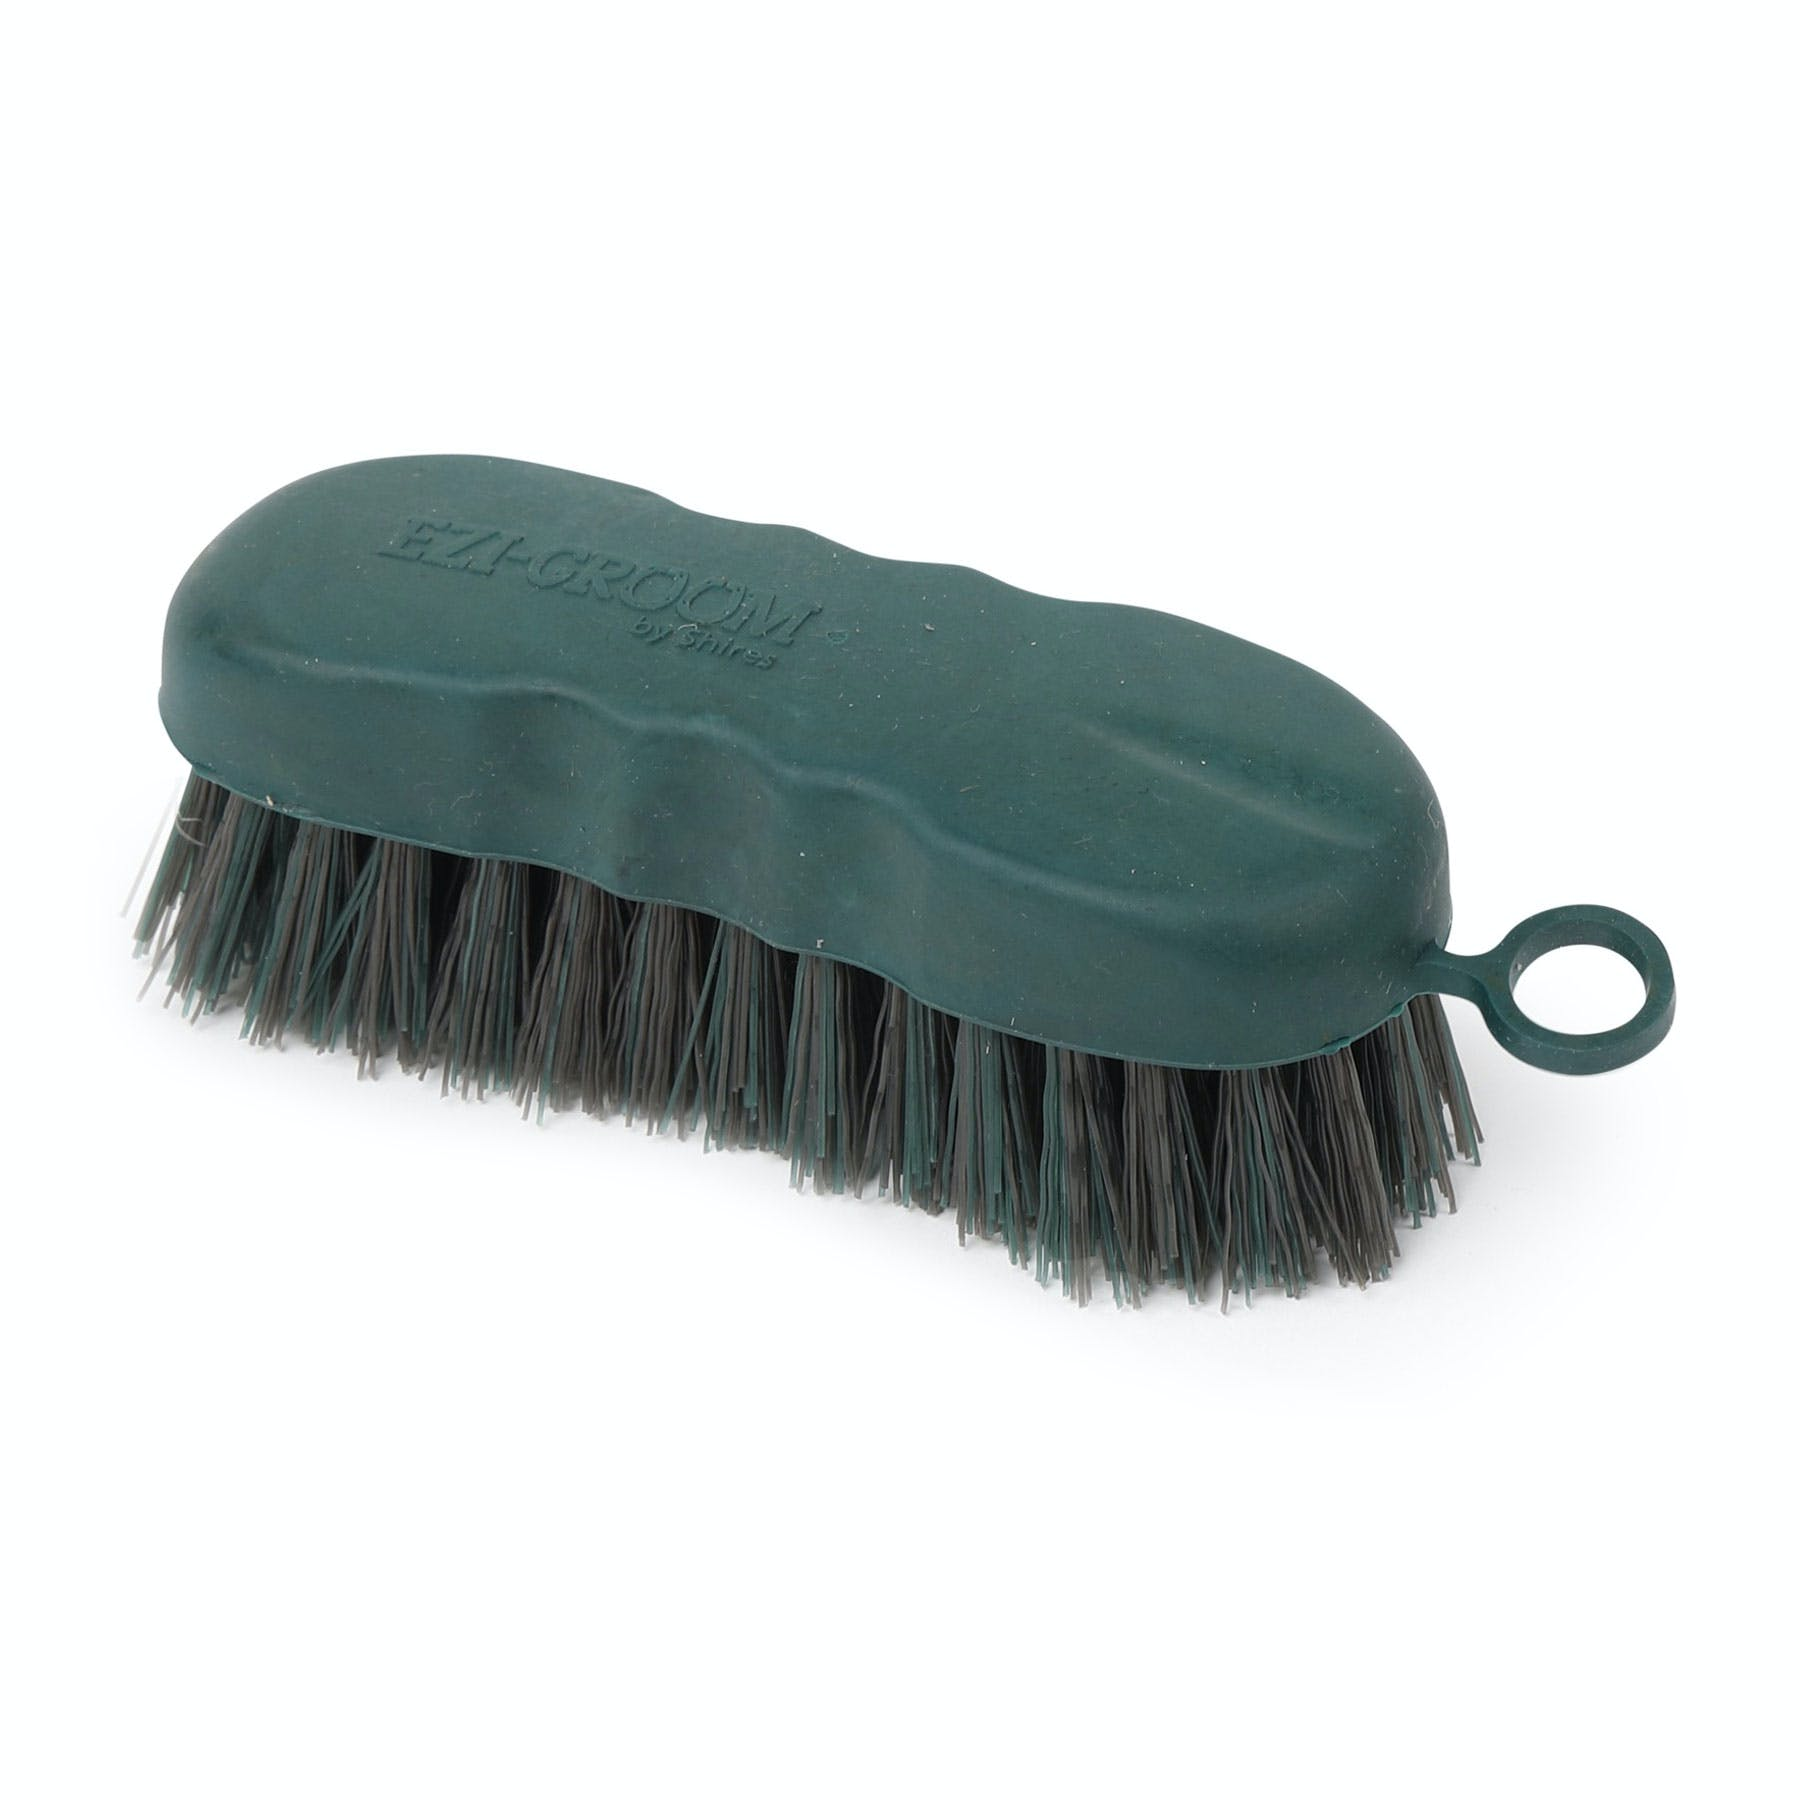 Cottage Craft Equestrian Pony Horse Grooming Care R225 Plastic Hoof Oil Brush